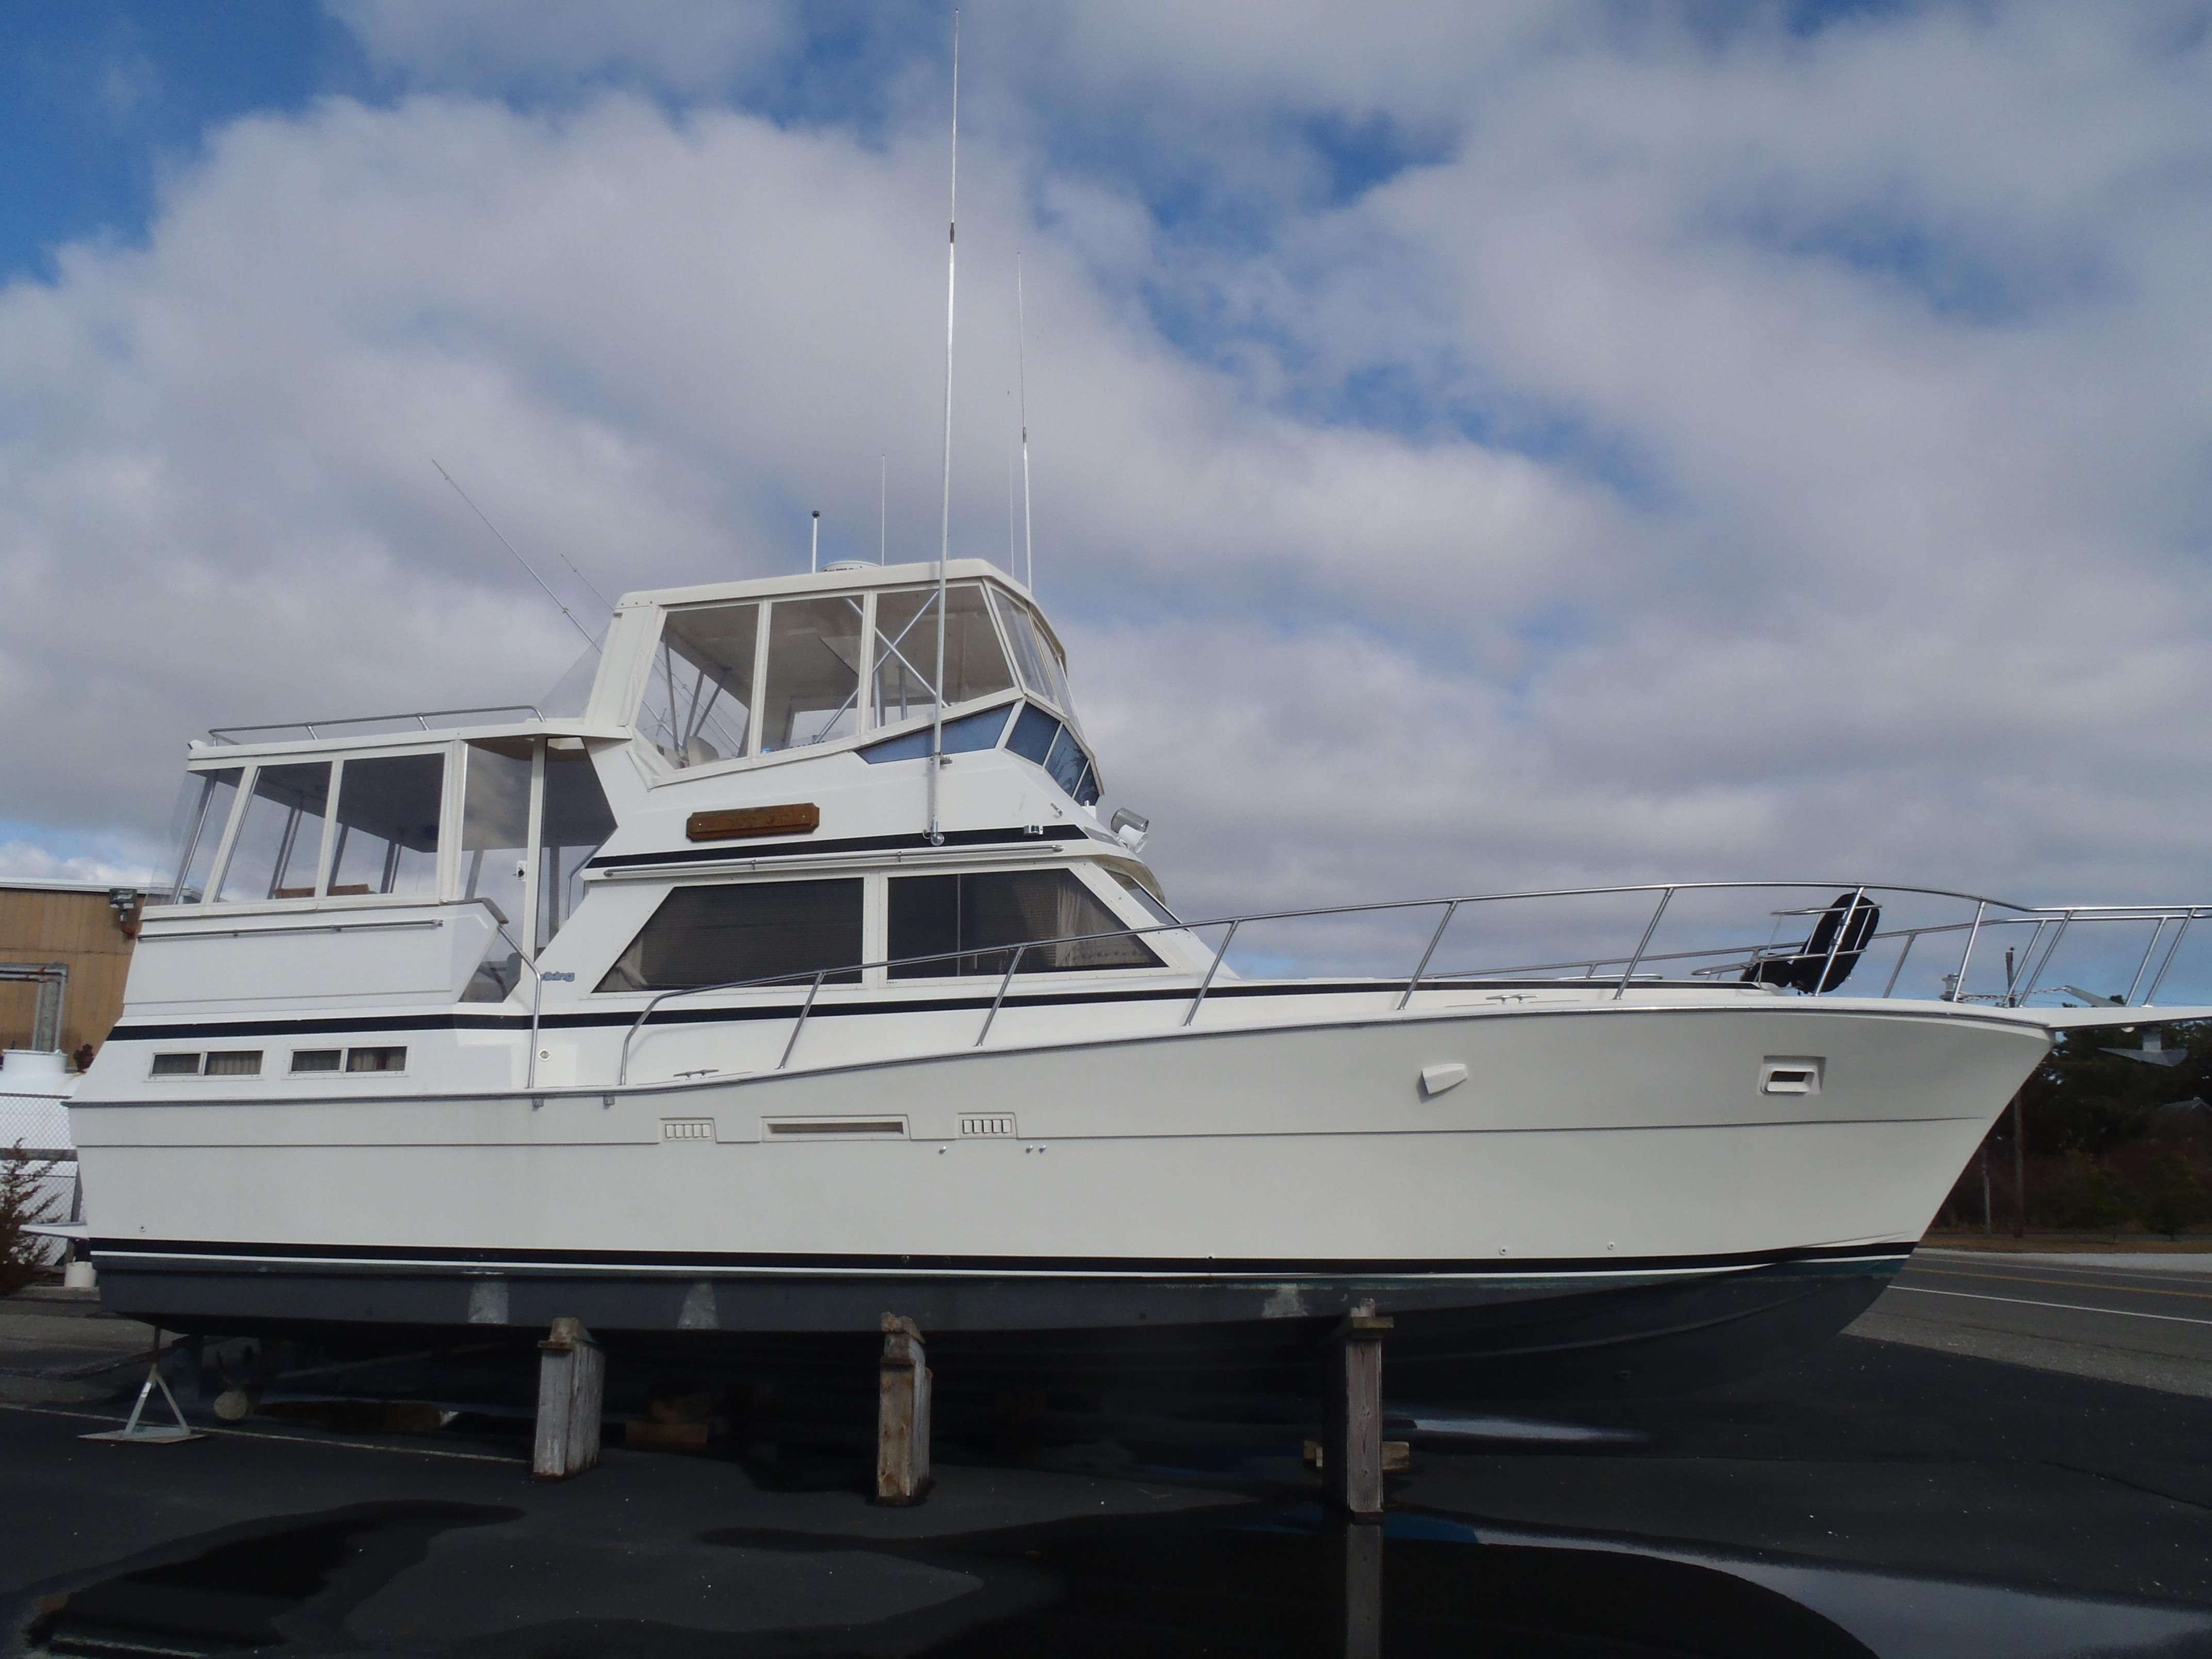 1987 viking 44 double cabin motor yacht power boat for sale for Viking 43 double cabin motor yacht